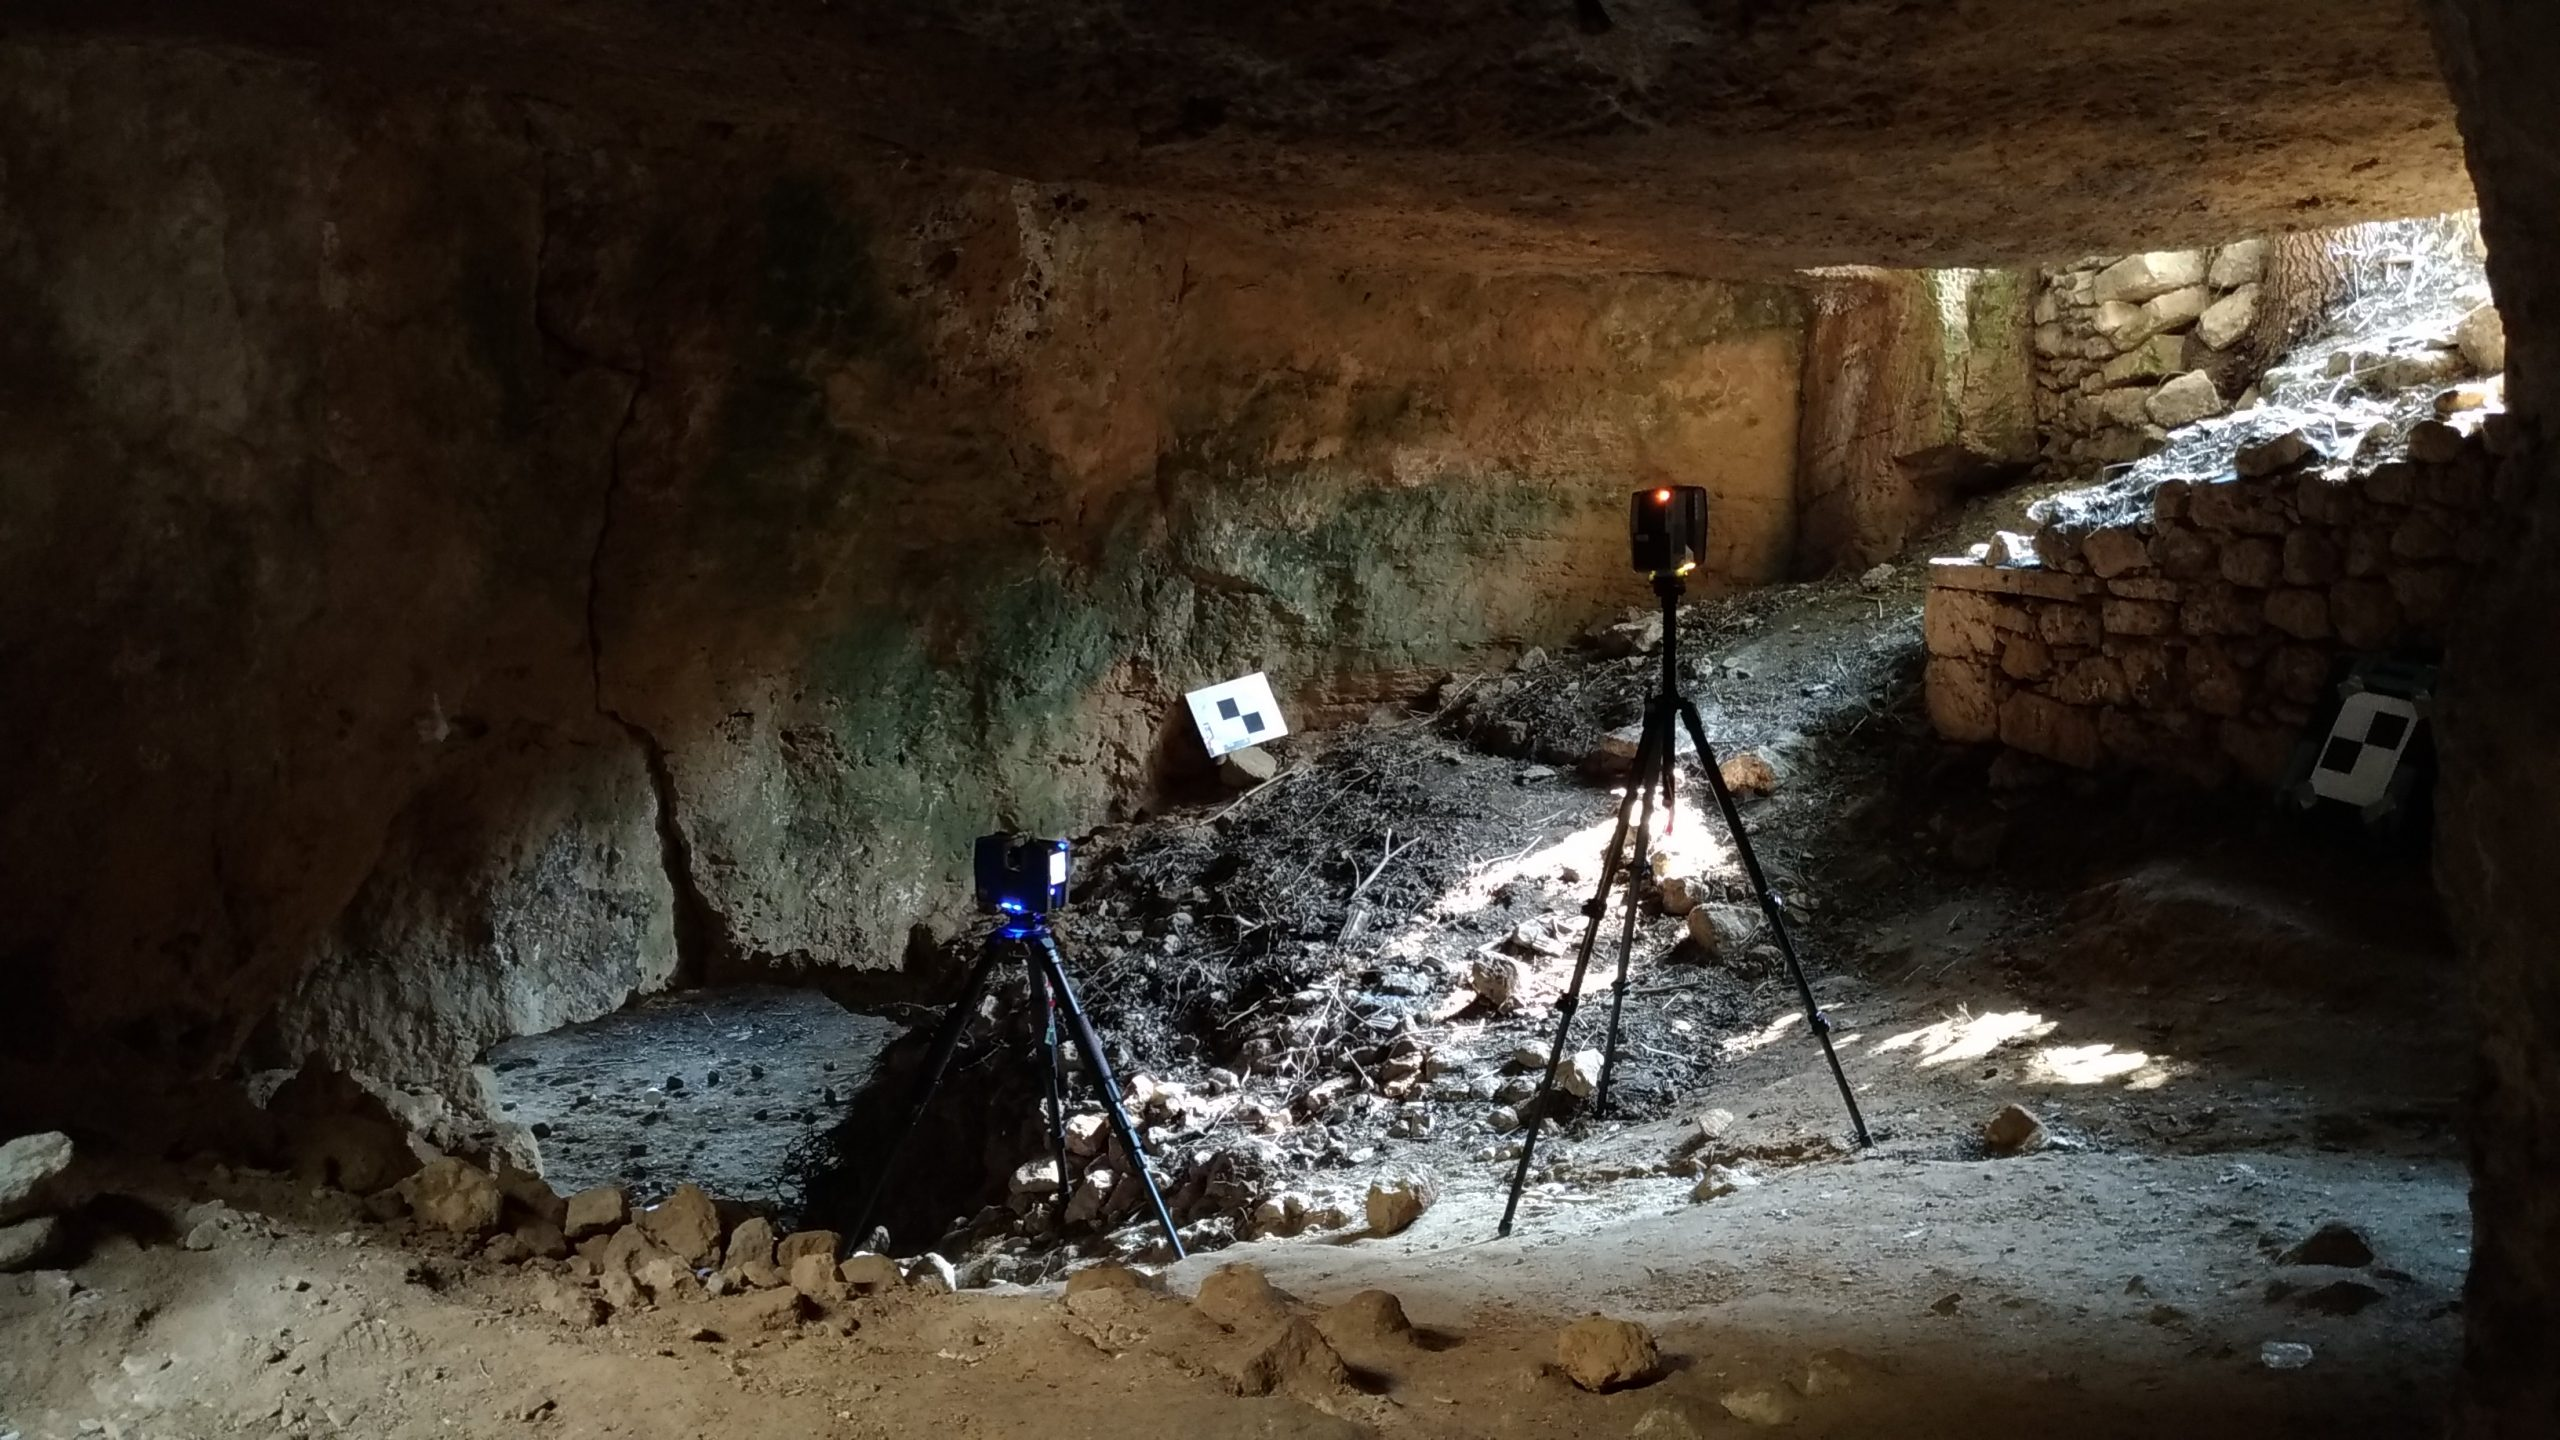 Two laser scanners on tripods standing inside an underground cave with light coming through an opening above.